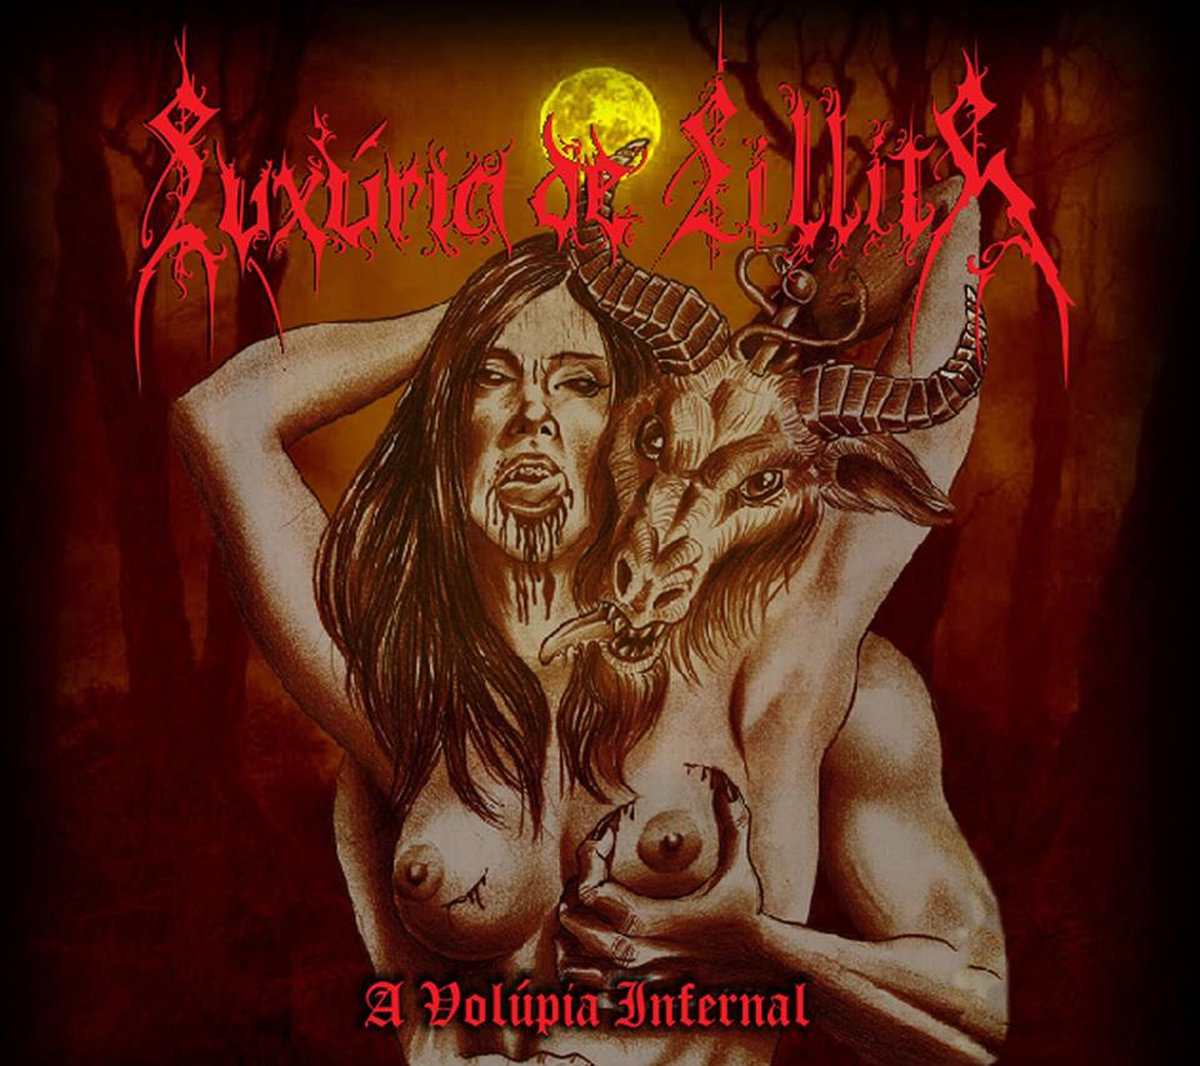 Luxúria de Lillith - A Volúpia Infernal  (Digipak)